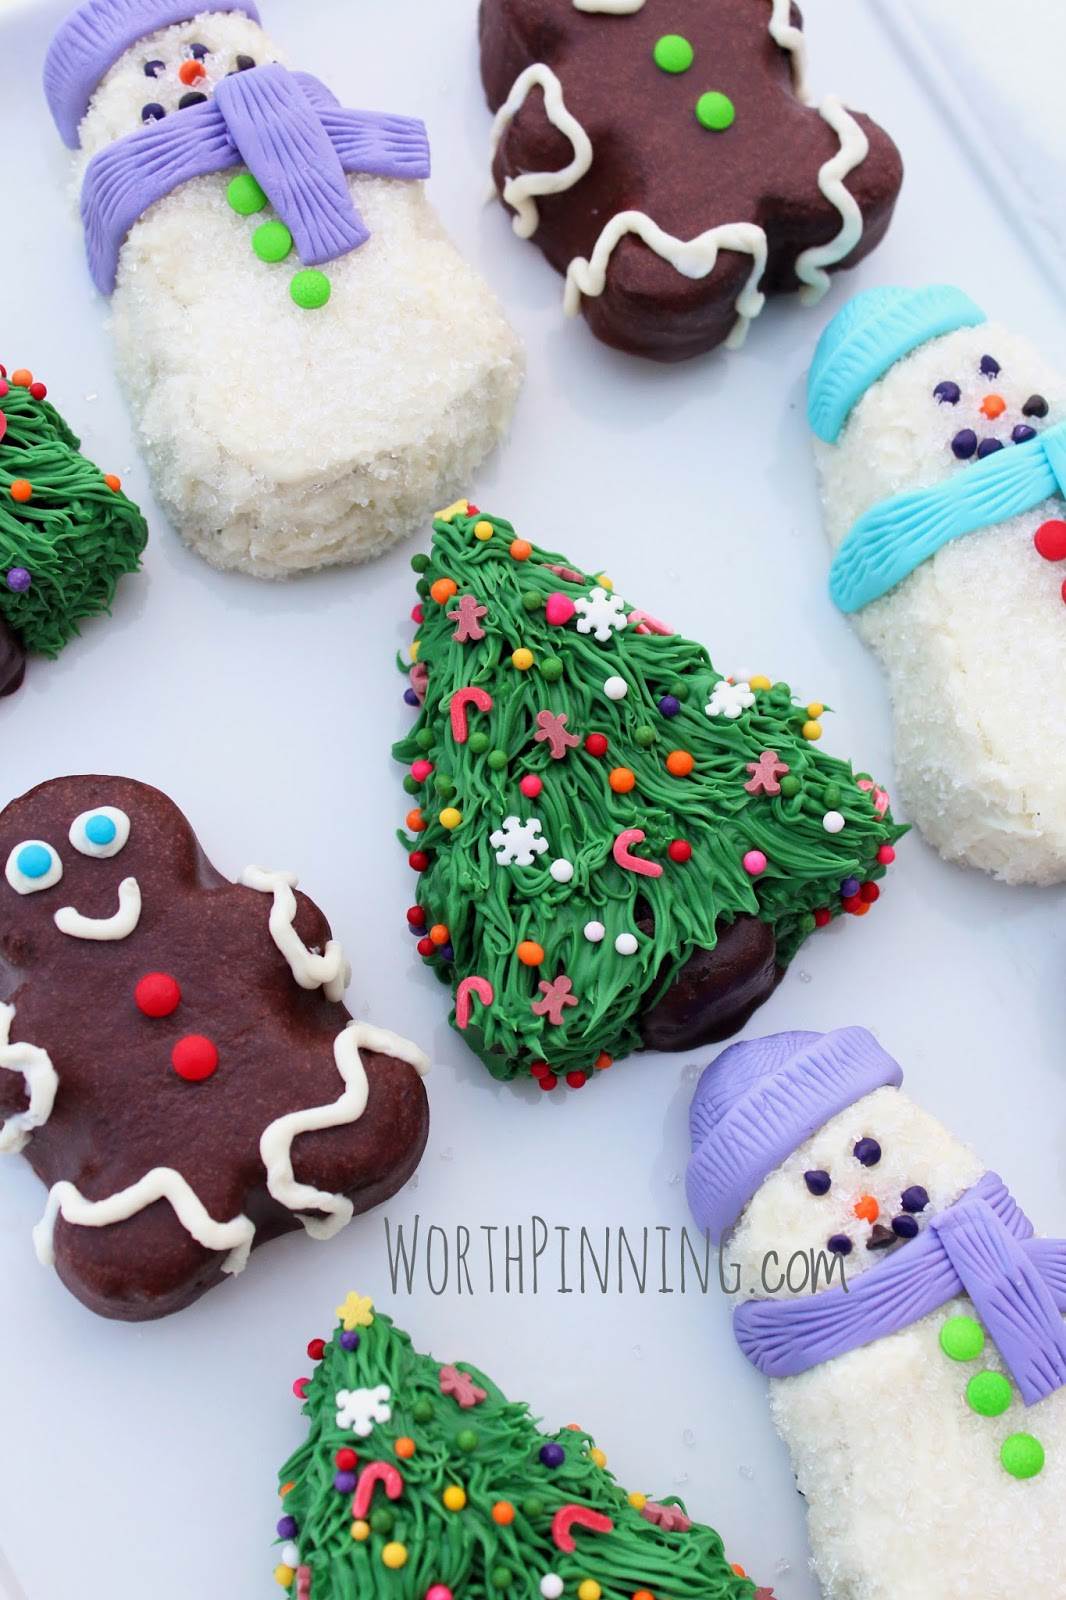 Christmas Chocolate Mini Cakes